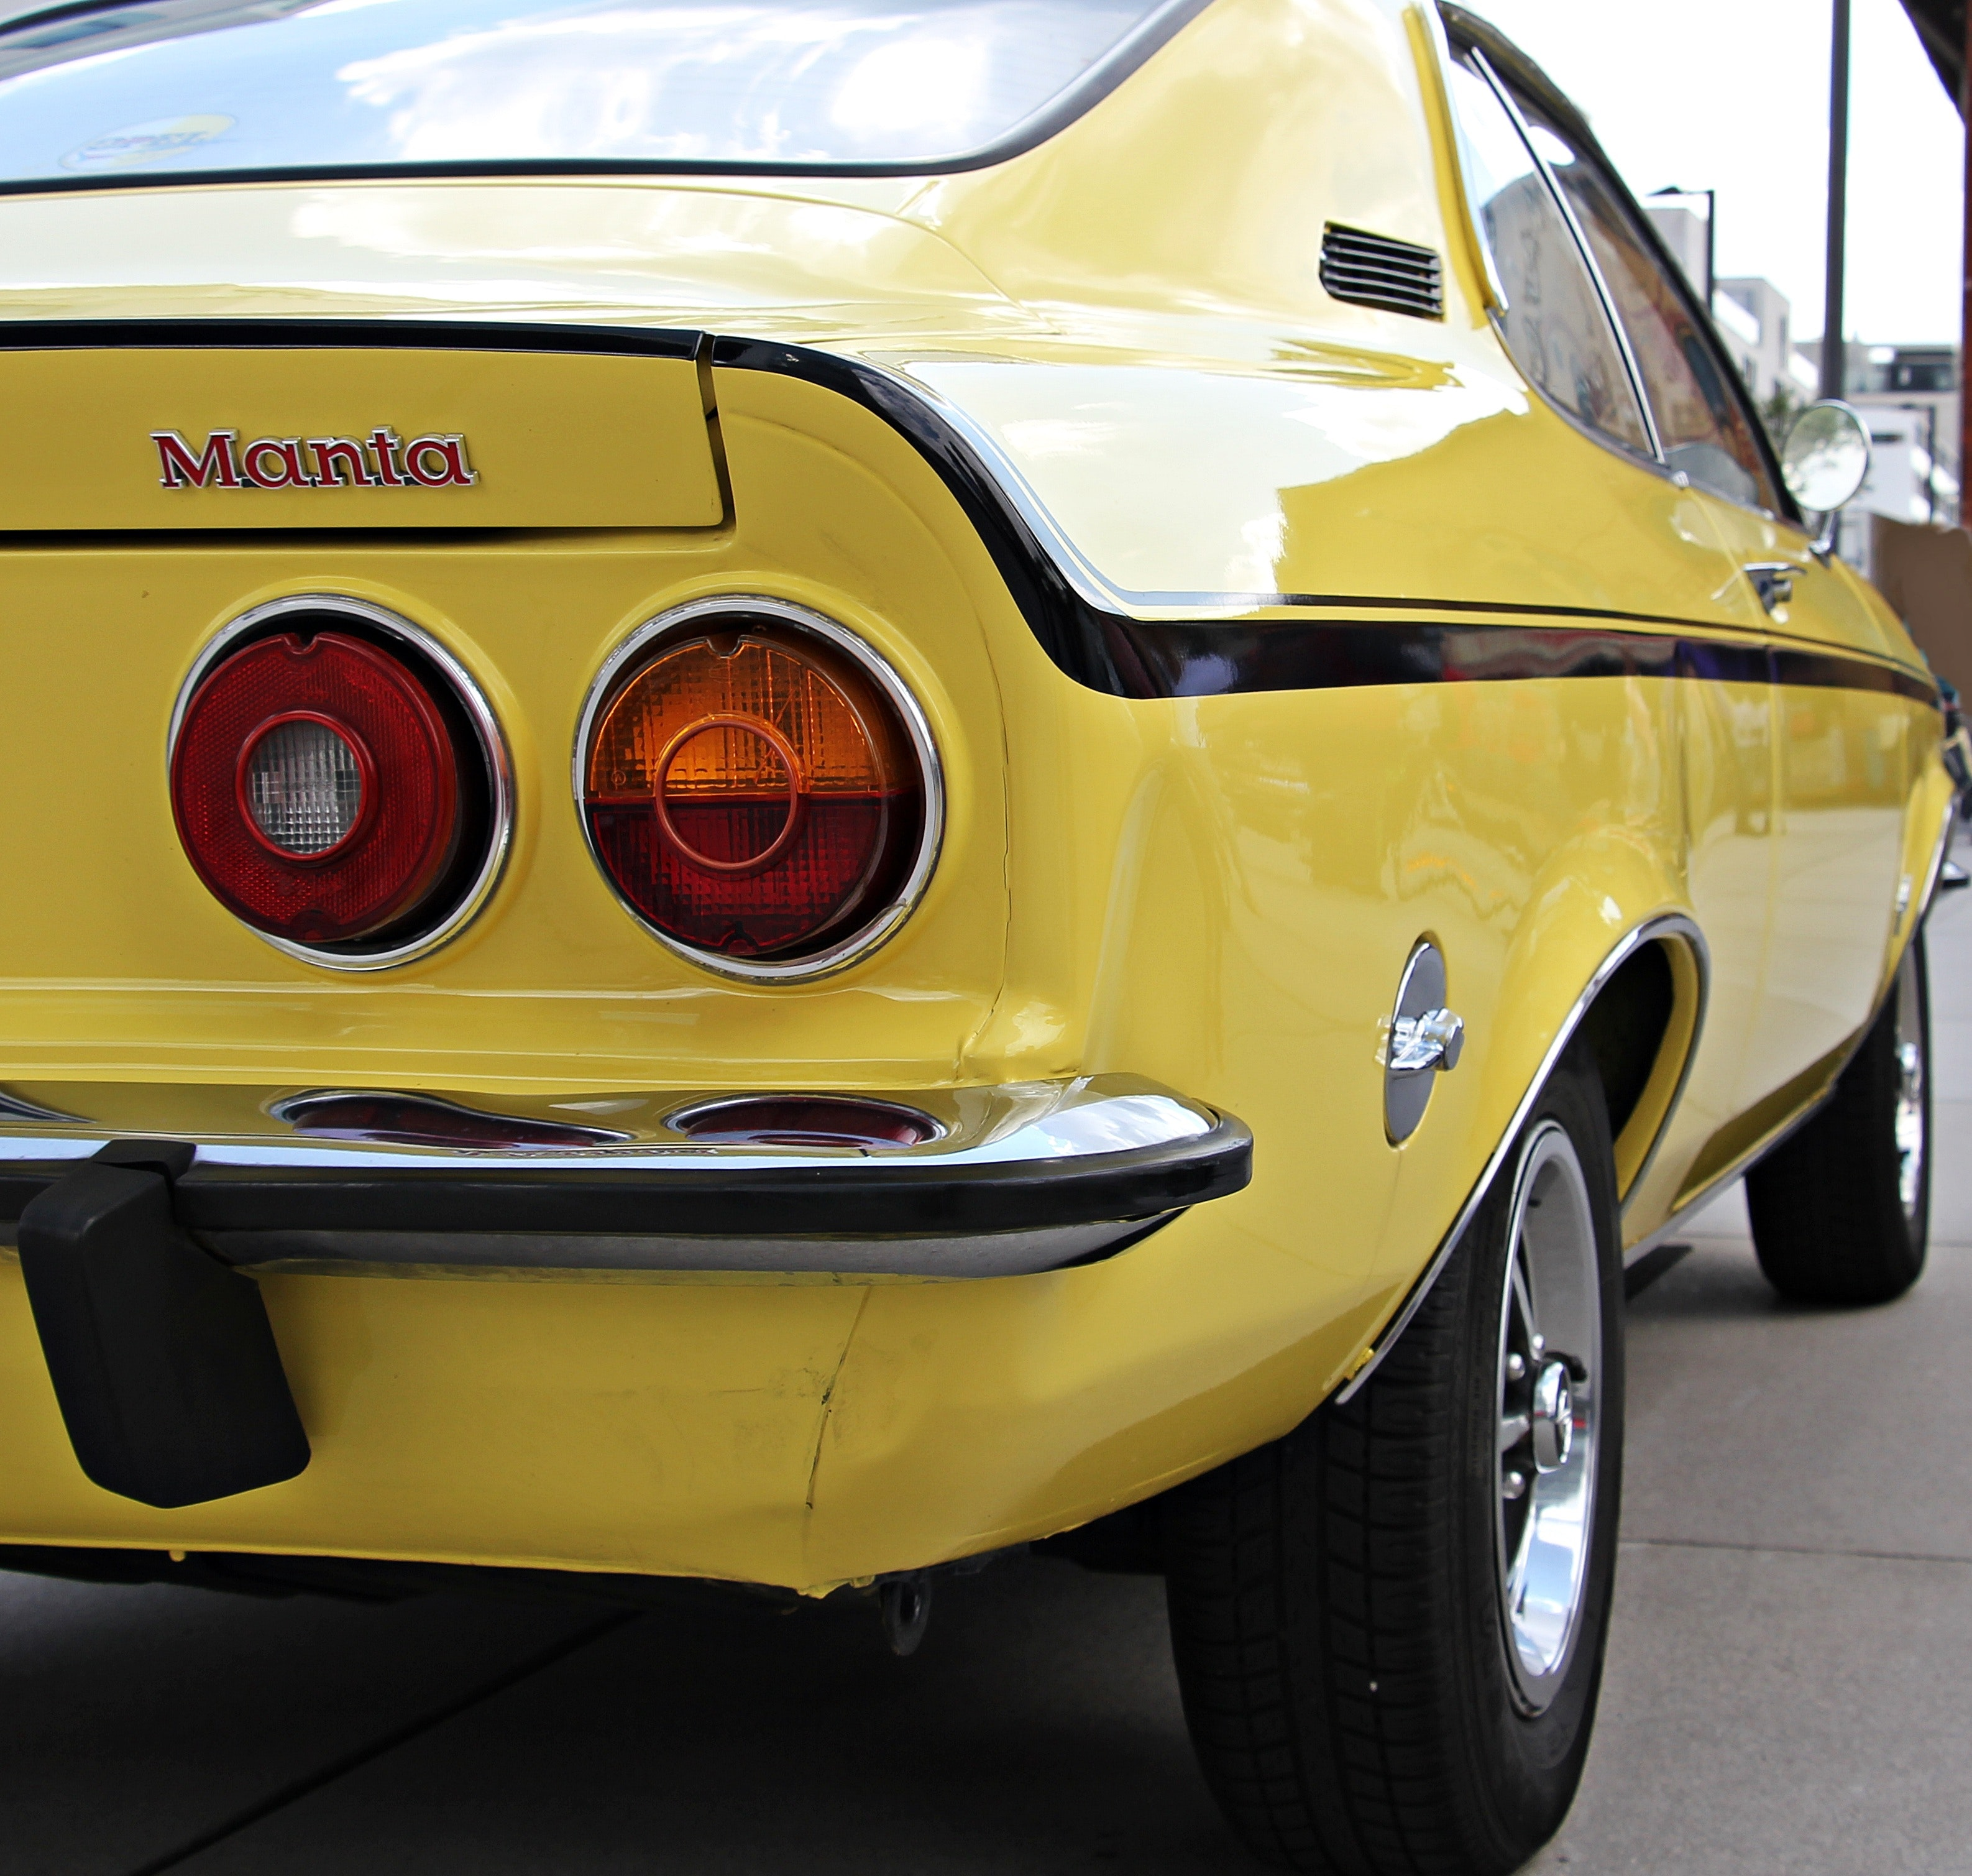 Yellow and black muscle car parked during daytime photo